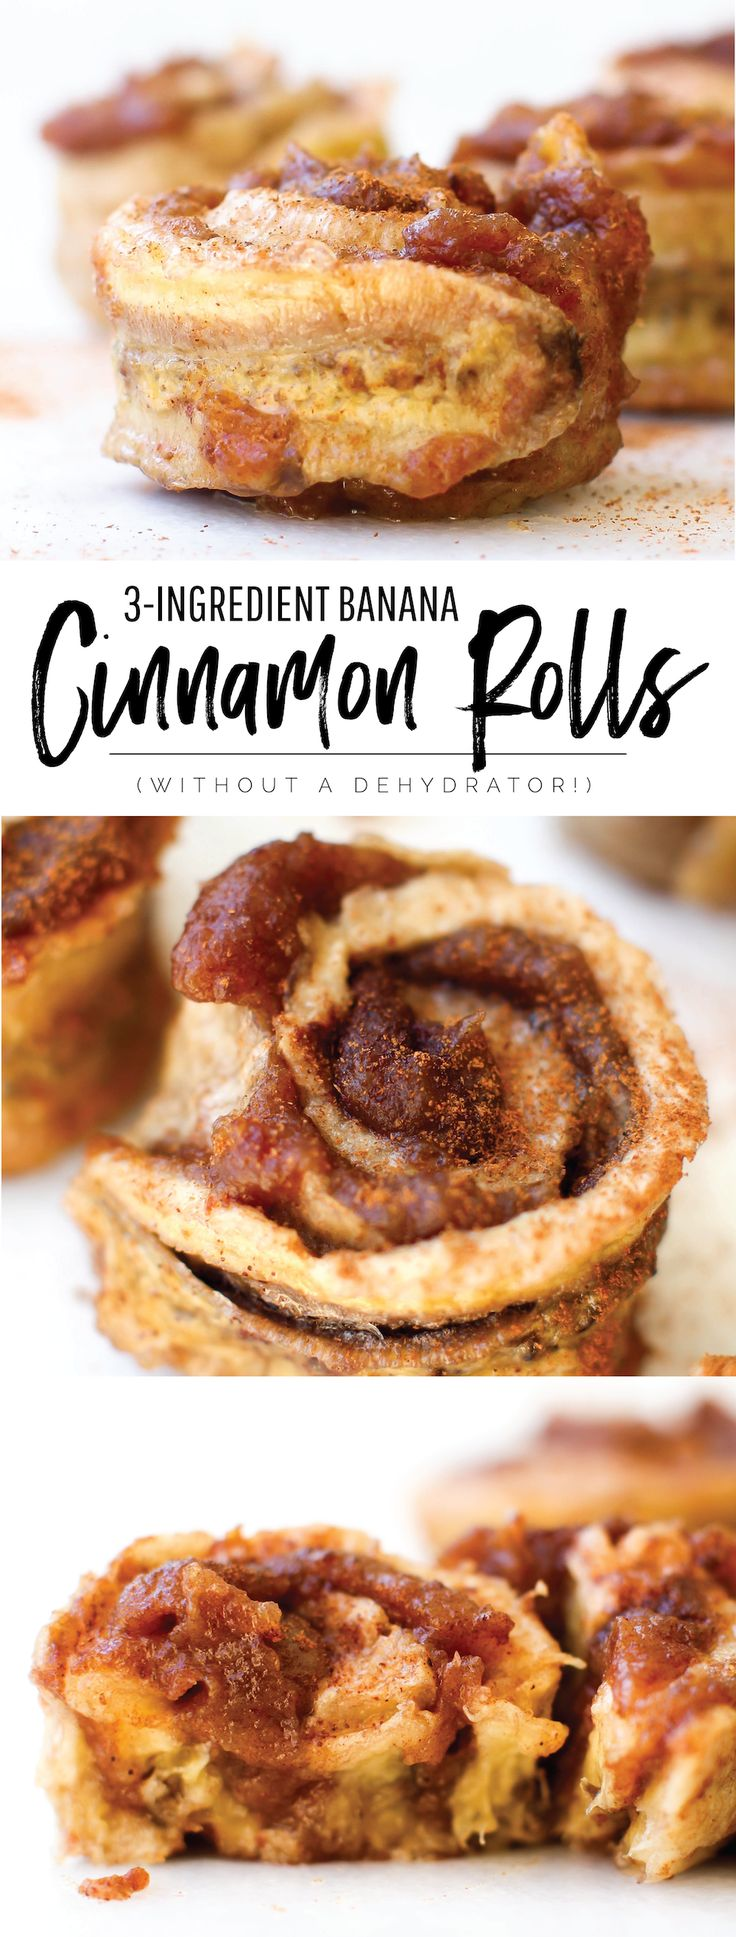 Banana Cinnamon Rolls Without a Dehydrator | Vegan & Only 3 ingredients! via @Natalie | Feasting on Fruit